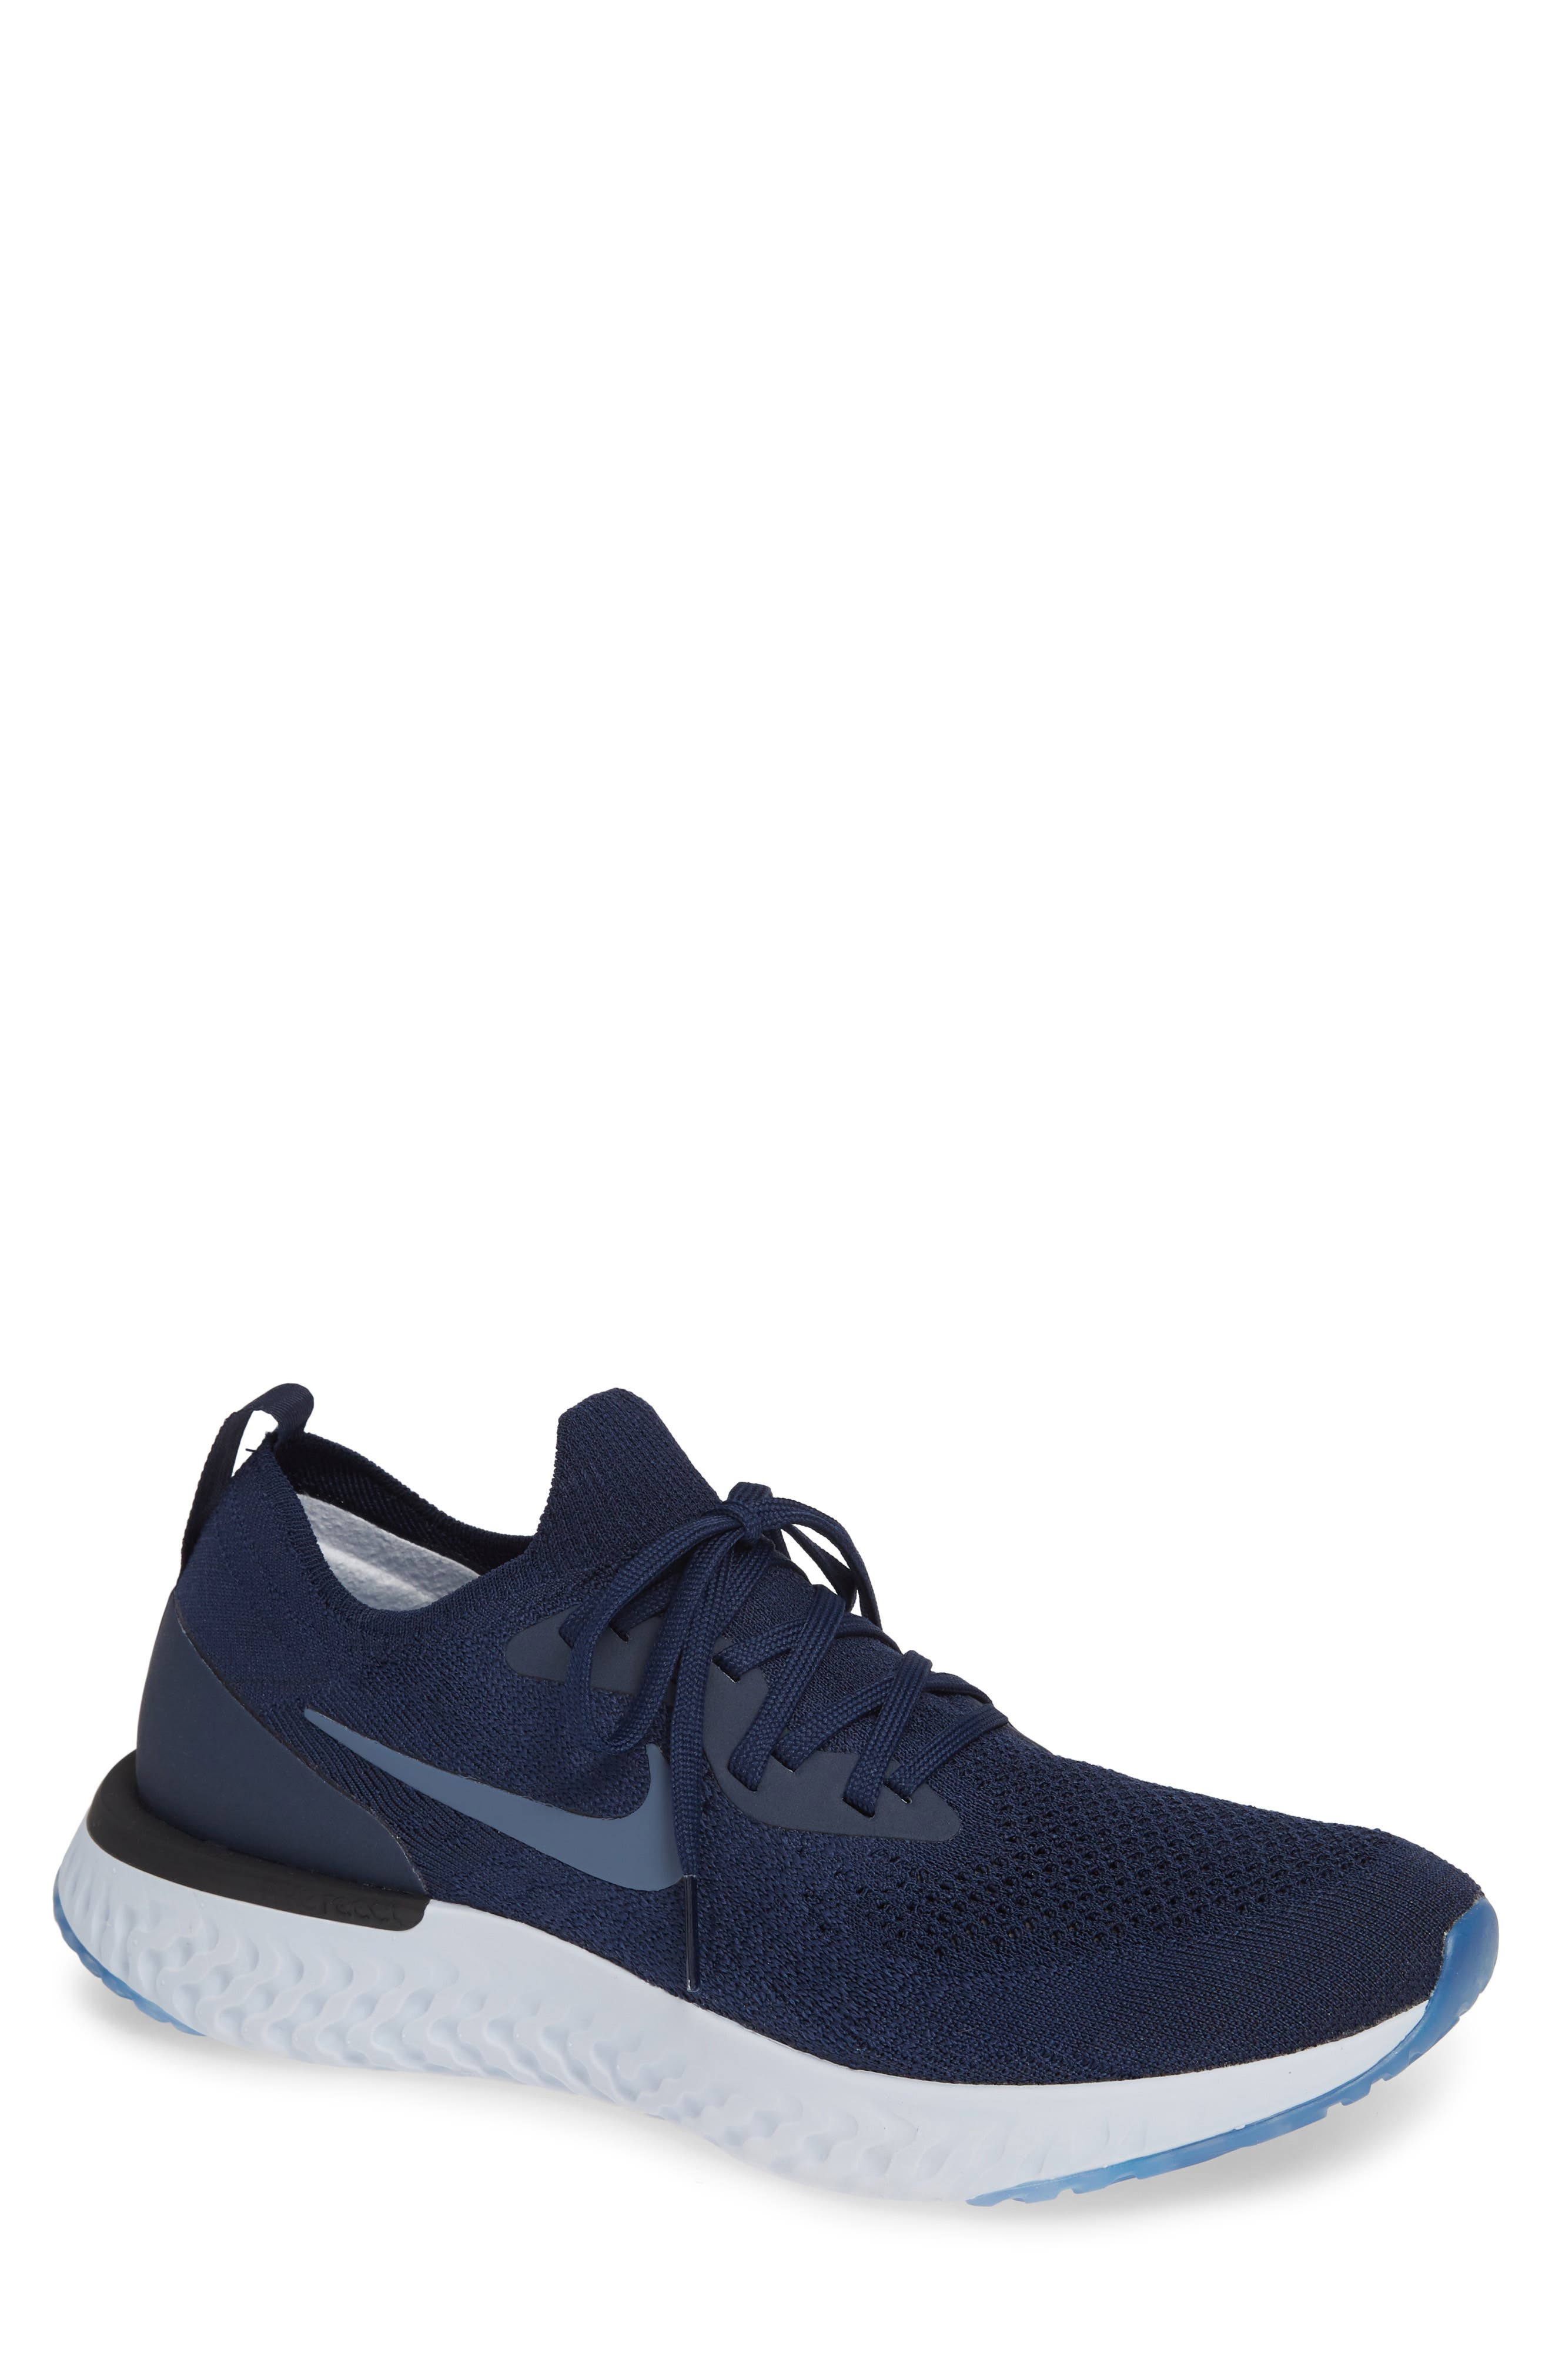 Epic React Flyknit Running Shoe, Main, color, COLLEGE NAVY/ BLUE/ GREY